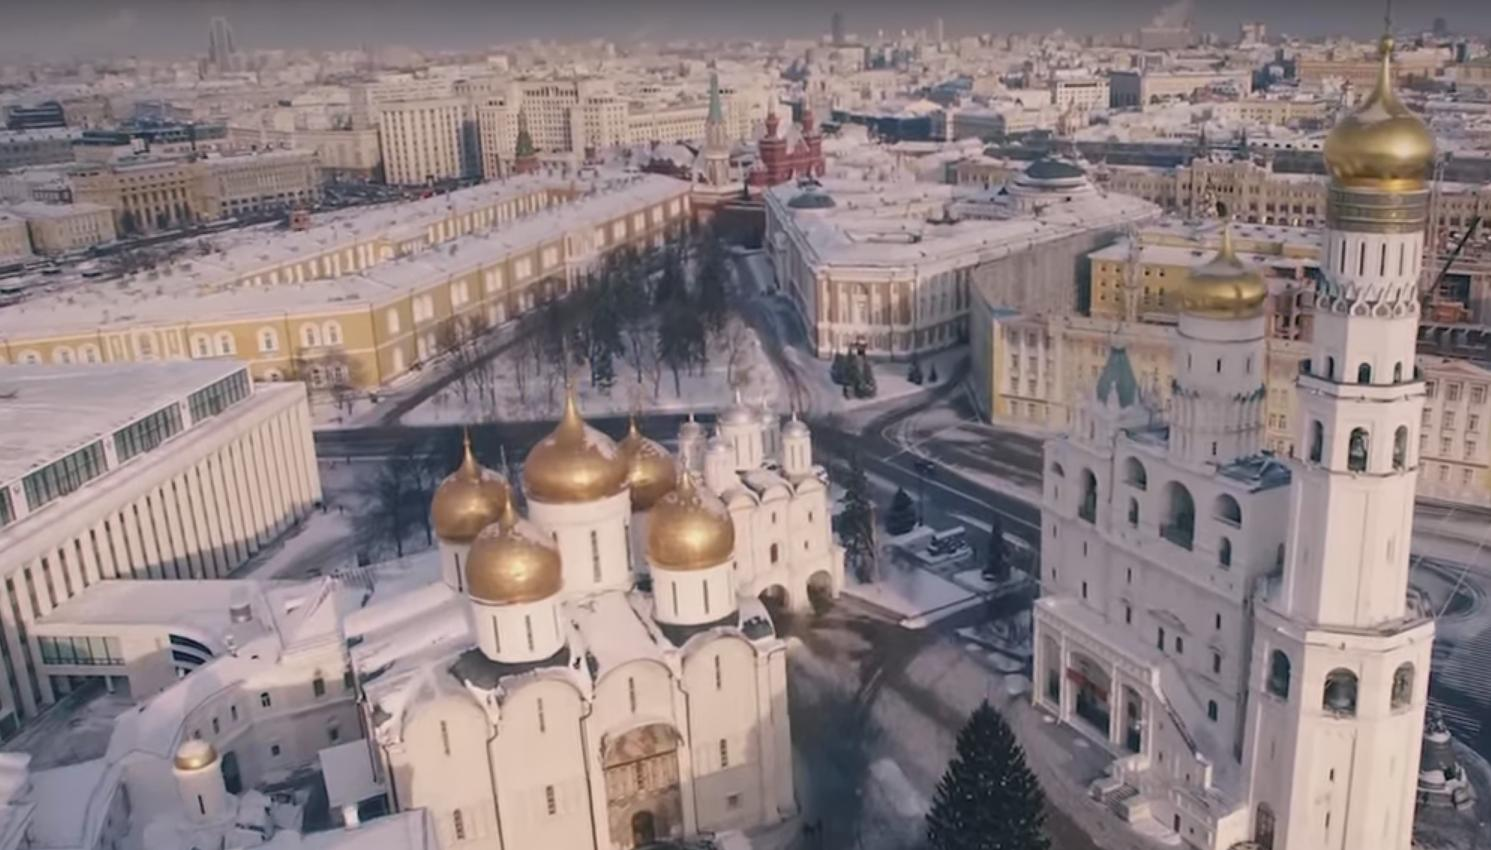 Beautiful Drone Footage of the City of Moscow